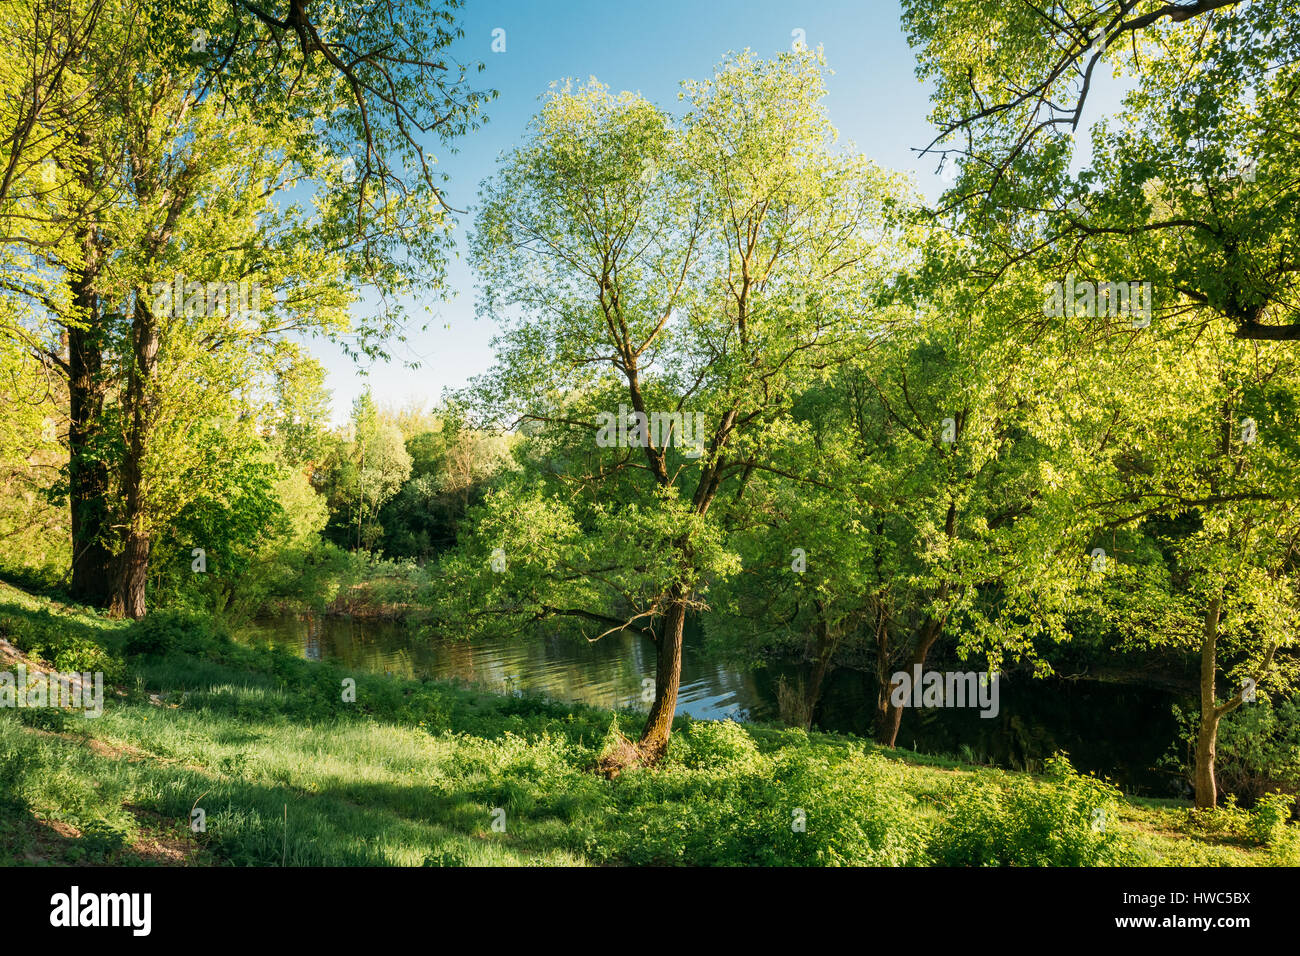 Green Willow Tree in Summer Park Forest Near River. Spring Nature ...